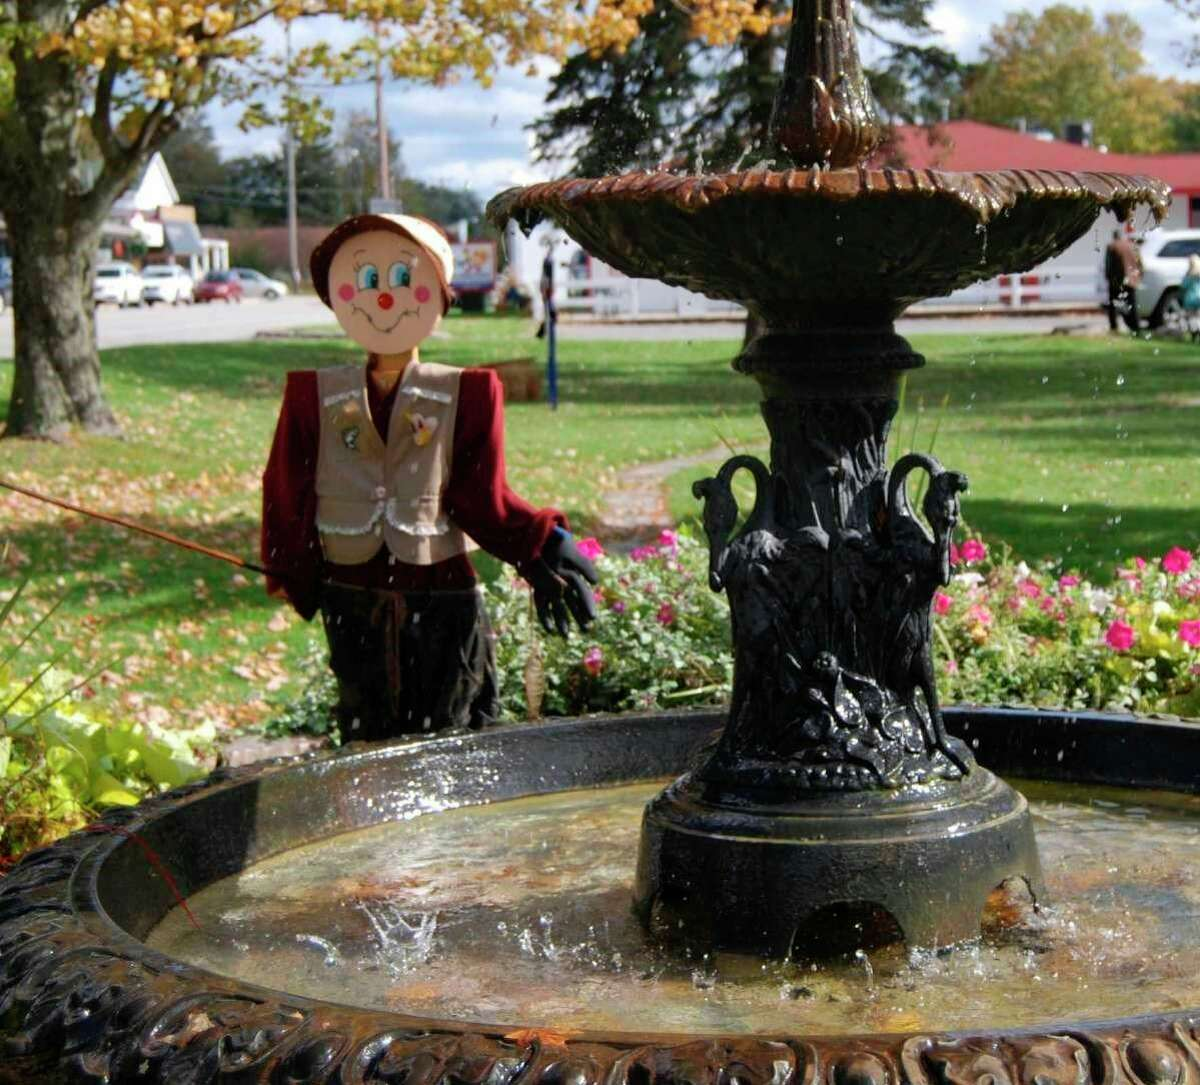 The annual Onekama Fall Festival is scheduled to start at 10 a.m. on Oct. 9 at the Village Park in Onekama. (File photo)